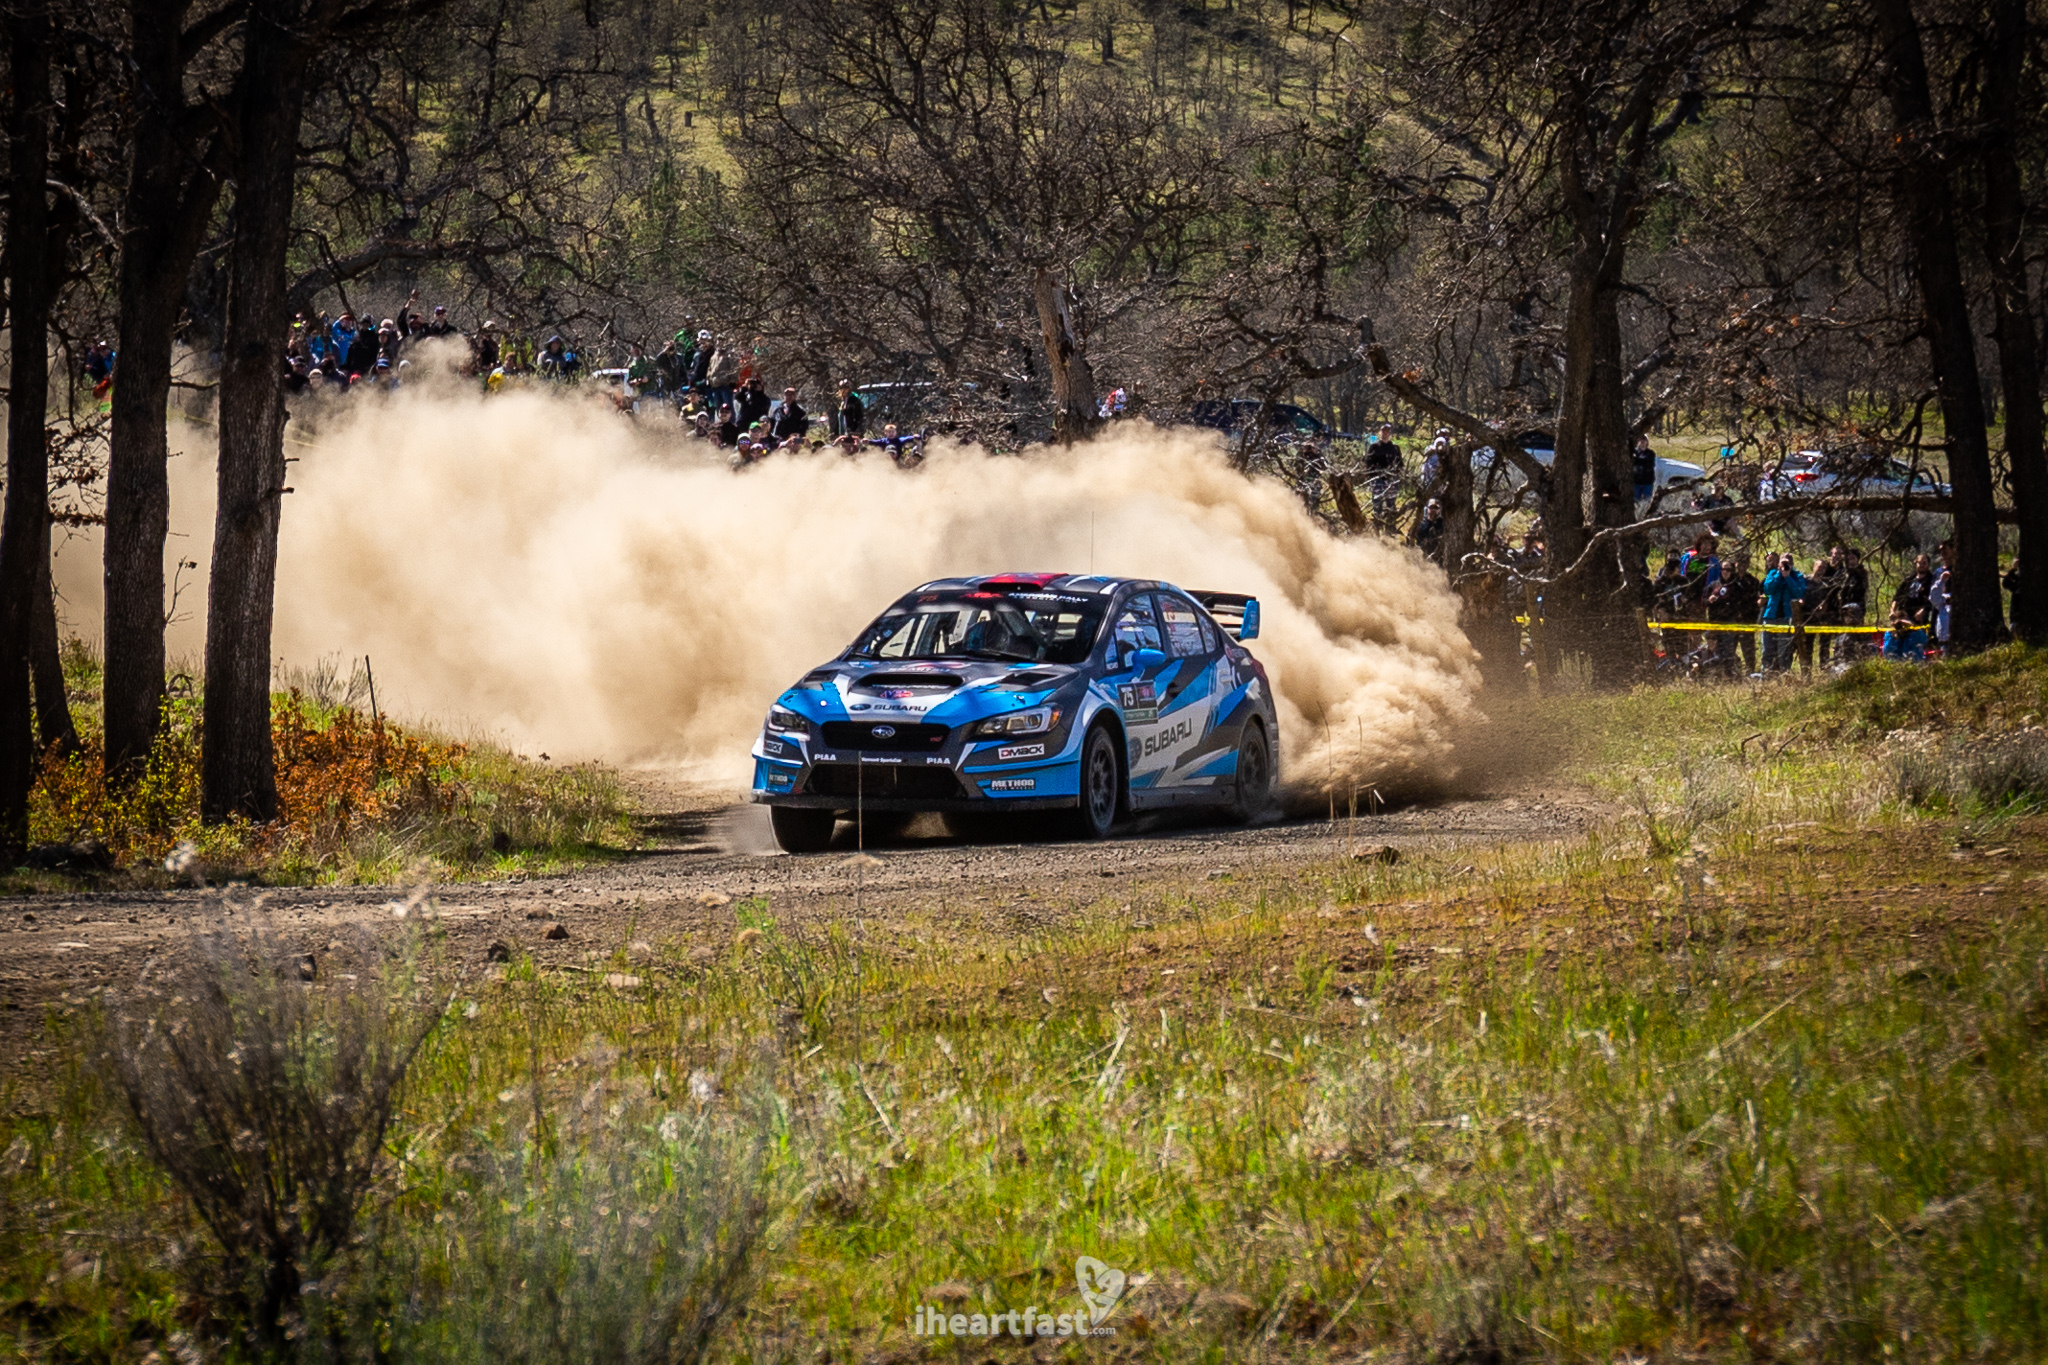 David Higgins kicks up a cloud of dust as spectators at Oregon Trail Rally cheer him on.